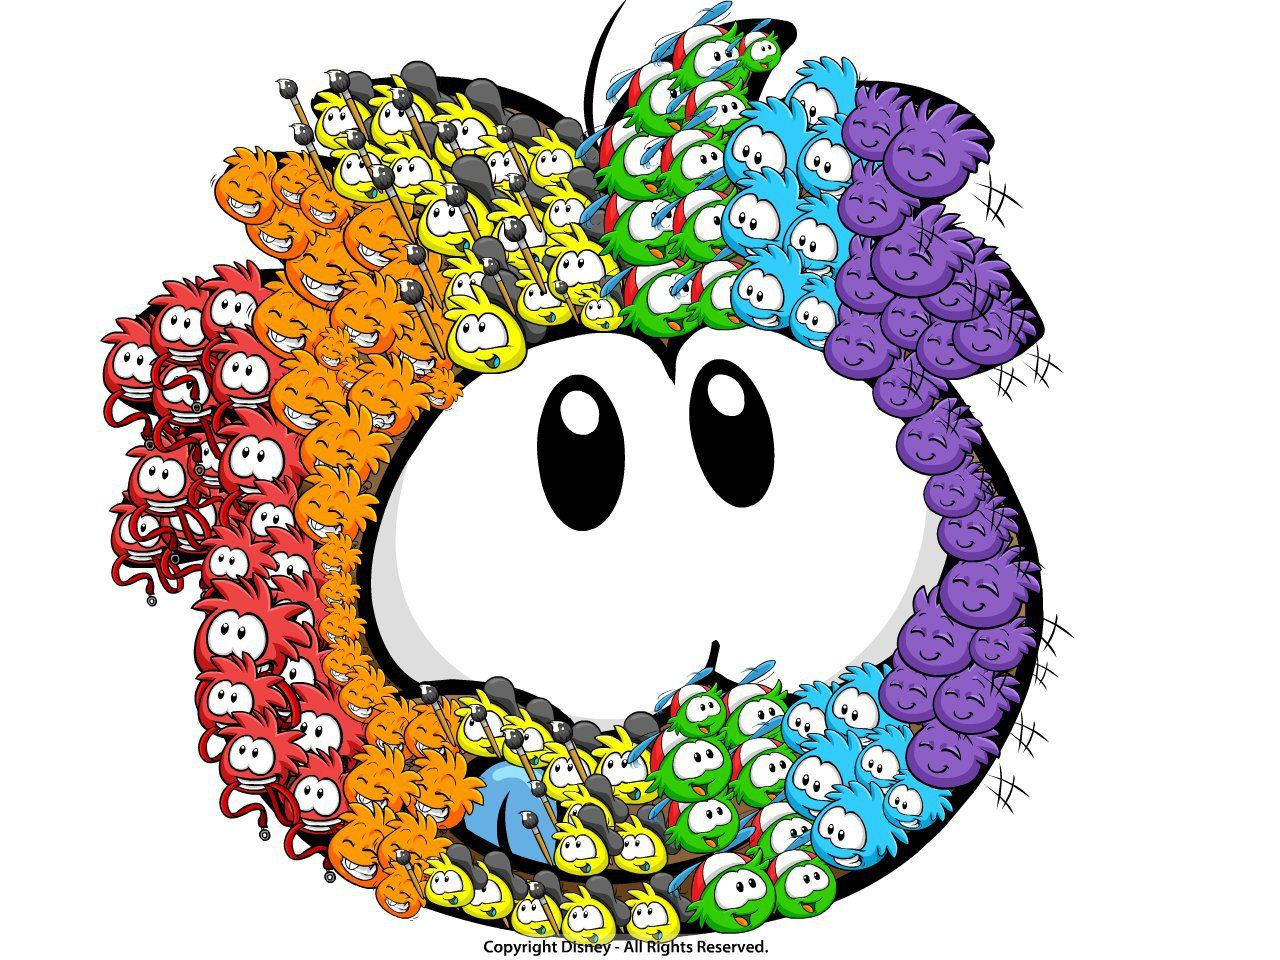 rainbow puffle! by epicmickey2002 | Create Art | Disney